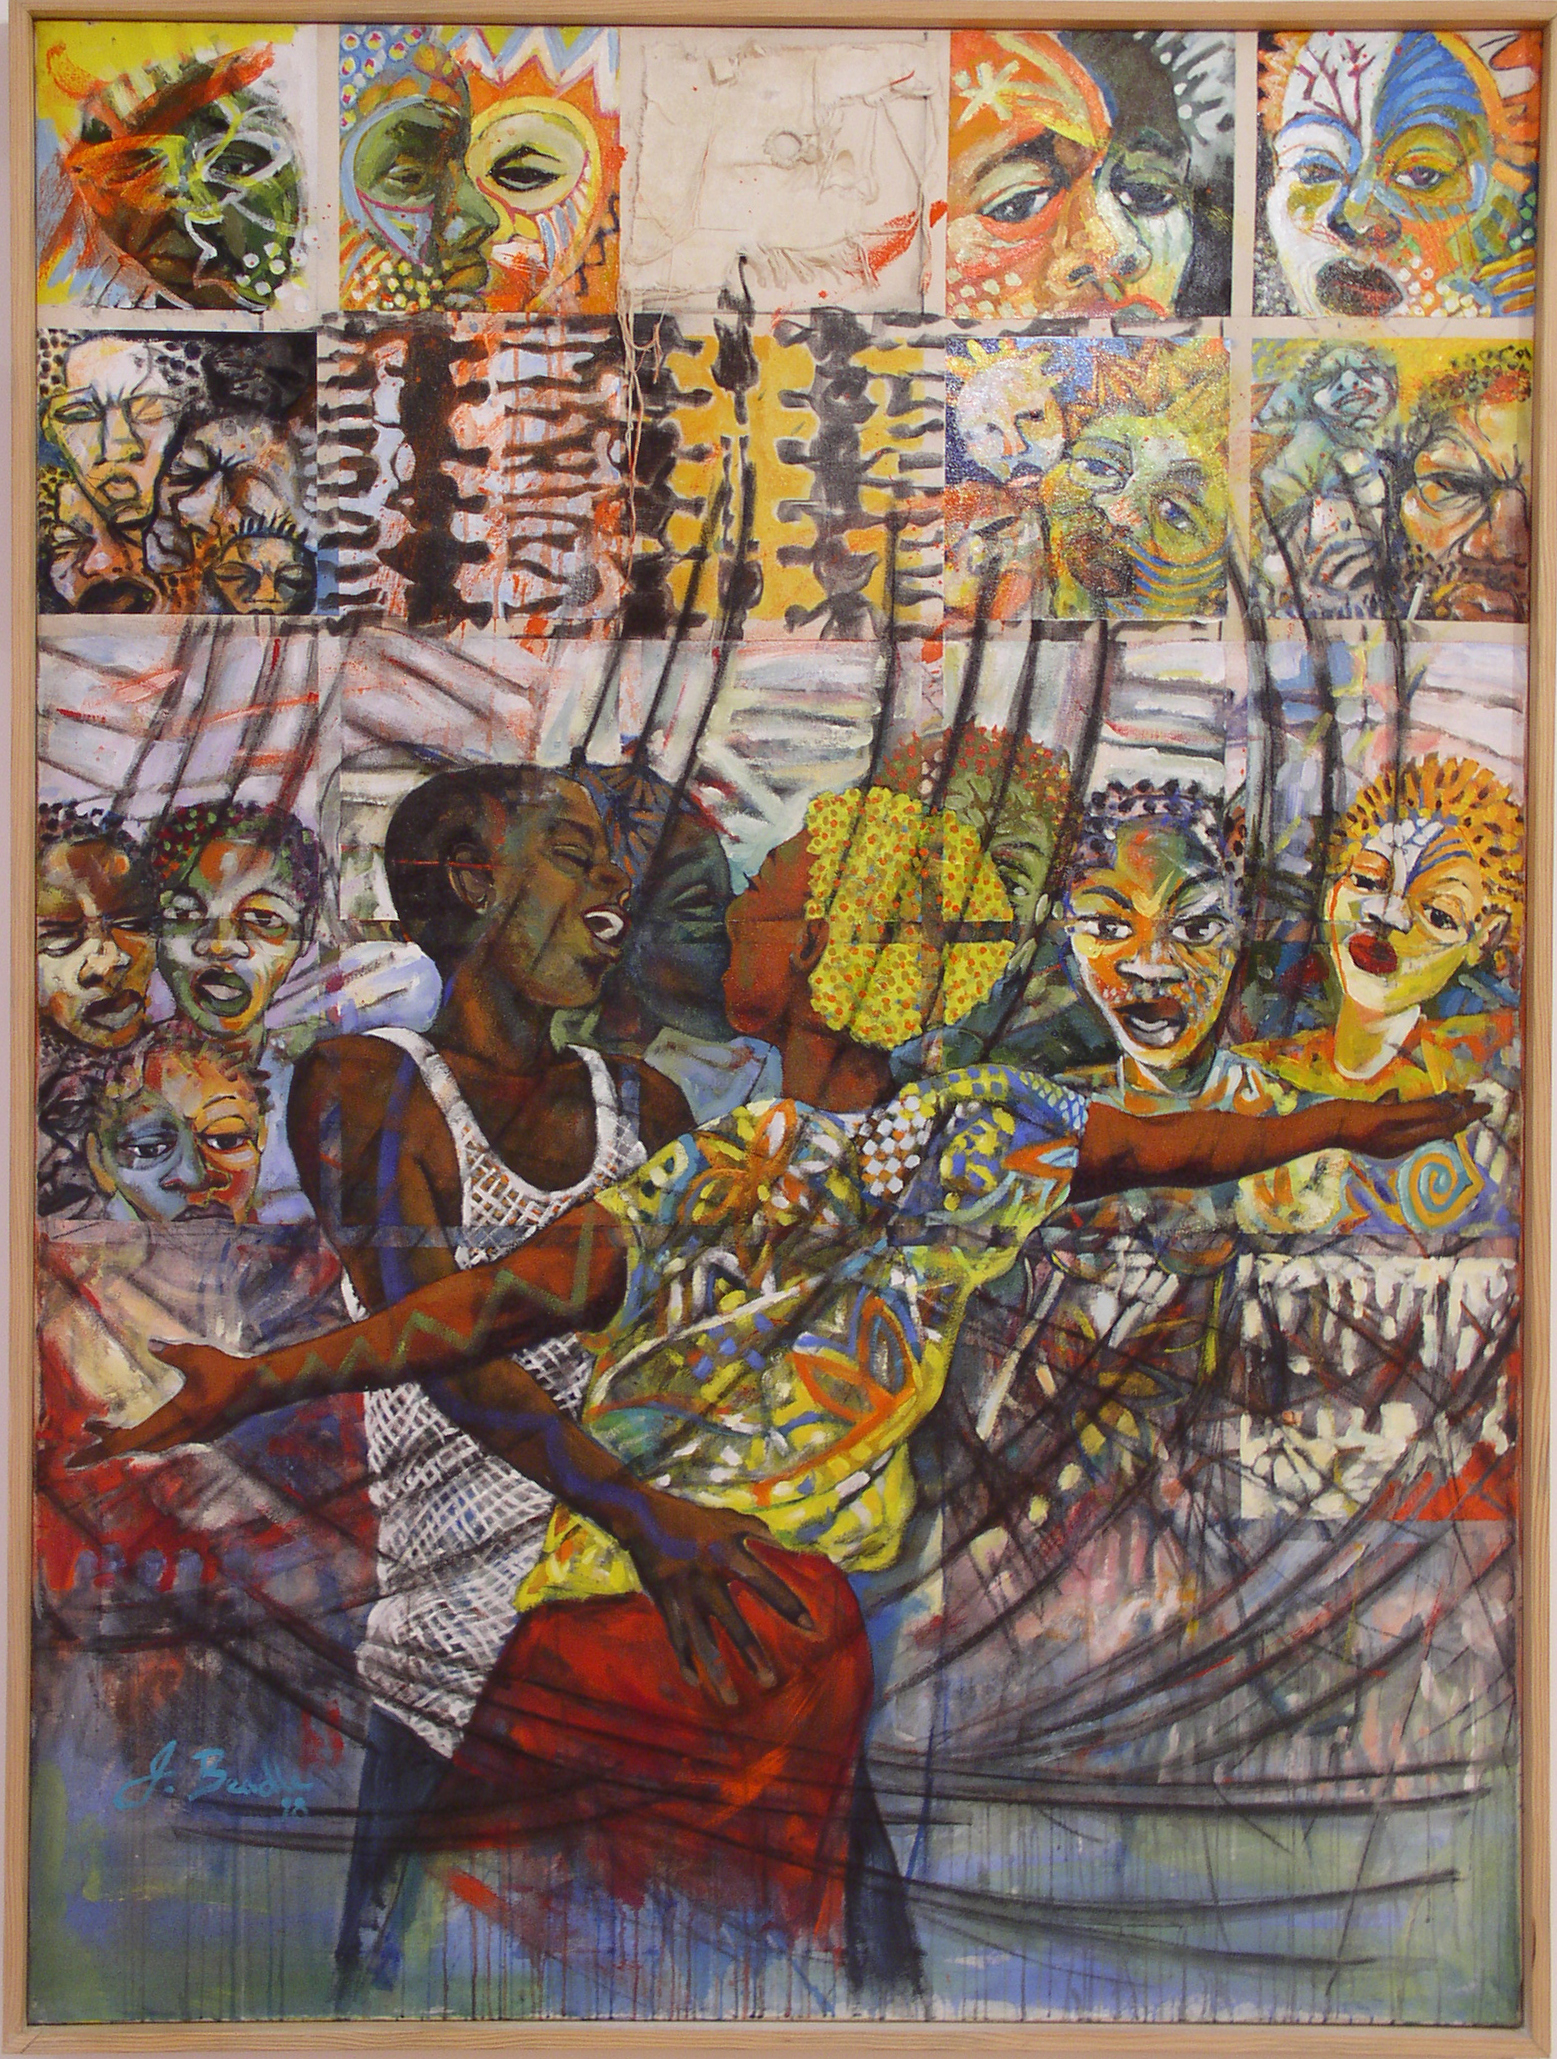 """""""Emancipation Day Boat Cruise"""" (2000), John Beadle, acrylic on canvas, 71 x 53. Part of the National collection."""